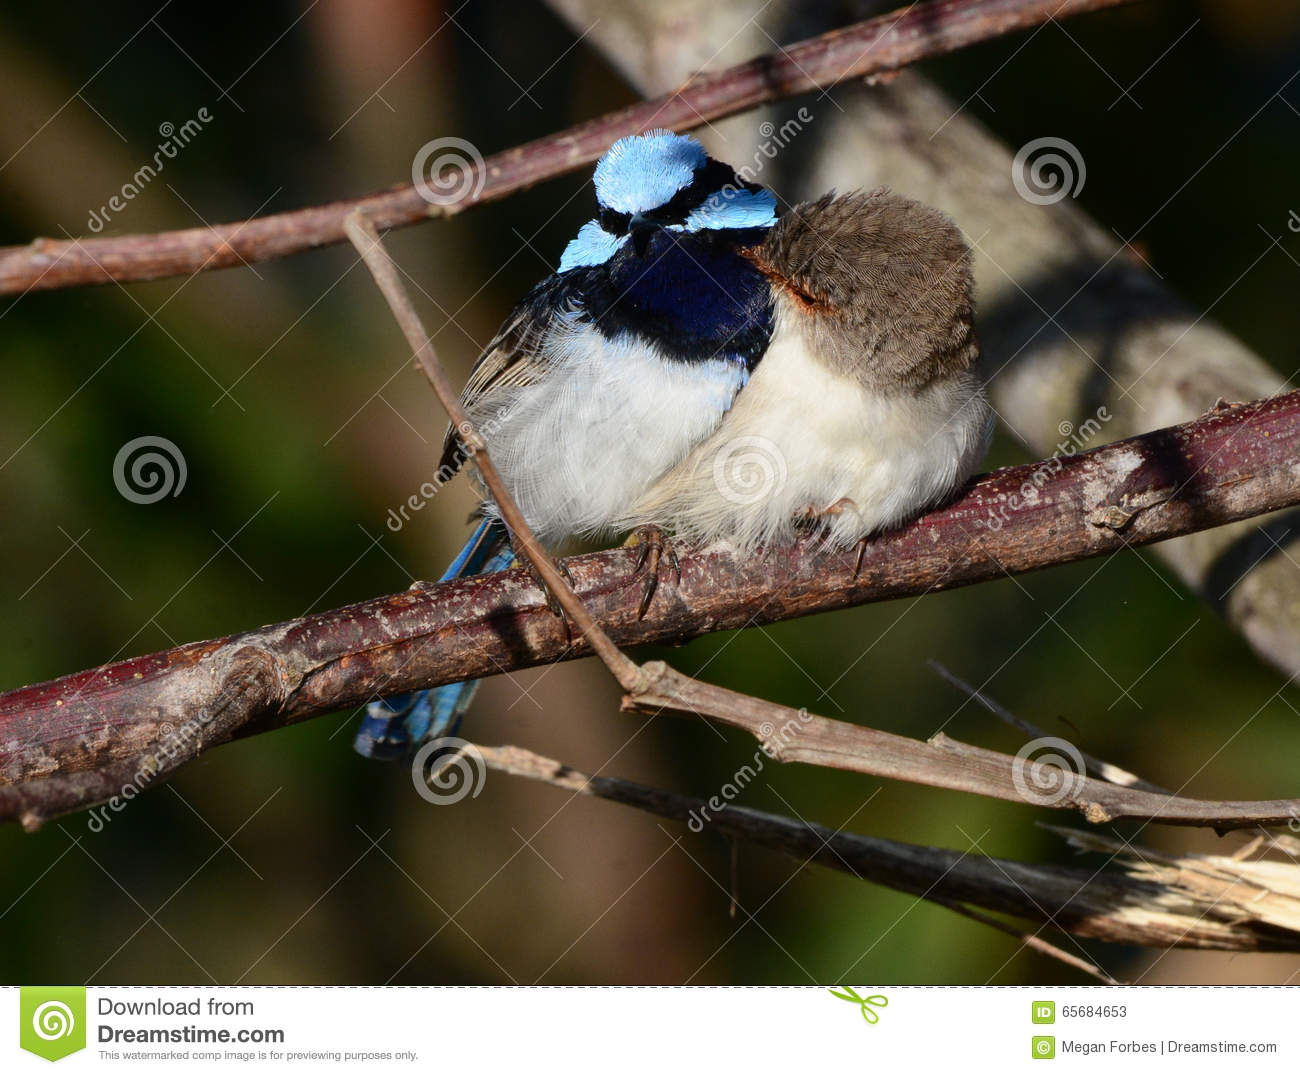 Superb Fairywren clipart #5, Download drawings